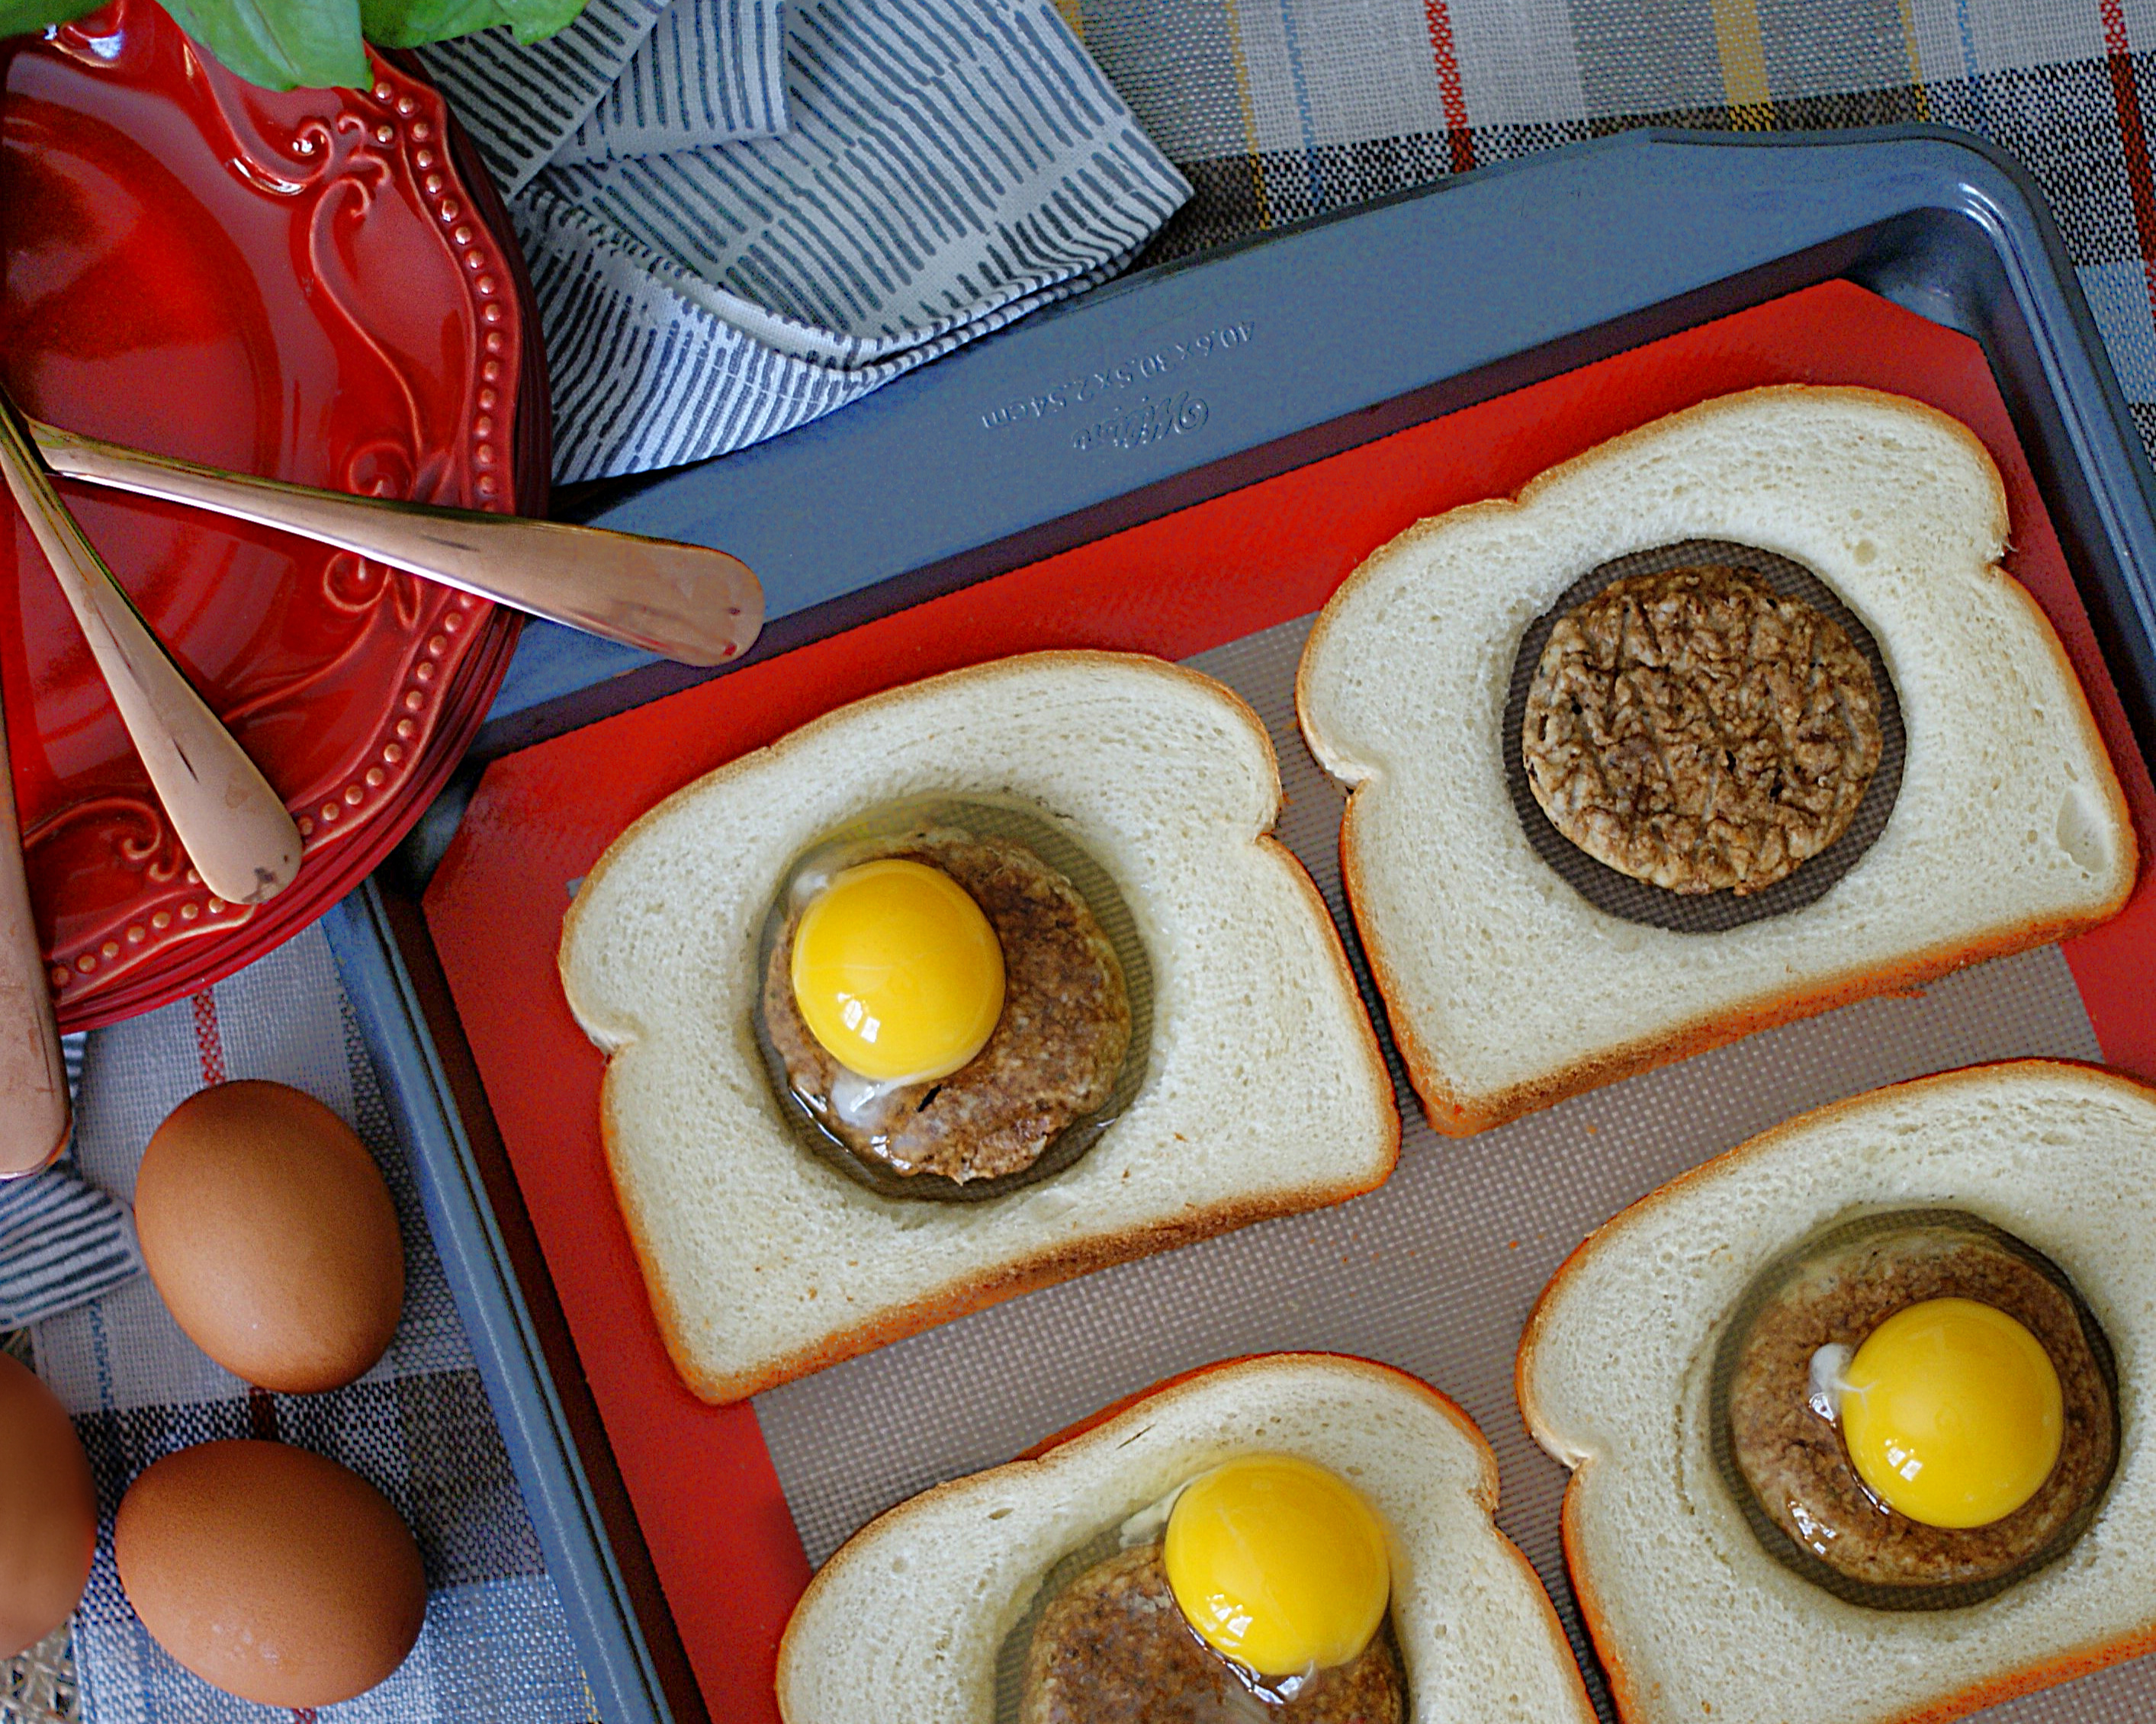 Sandwich bread with hole removed and filled with sausage and egg.